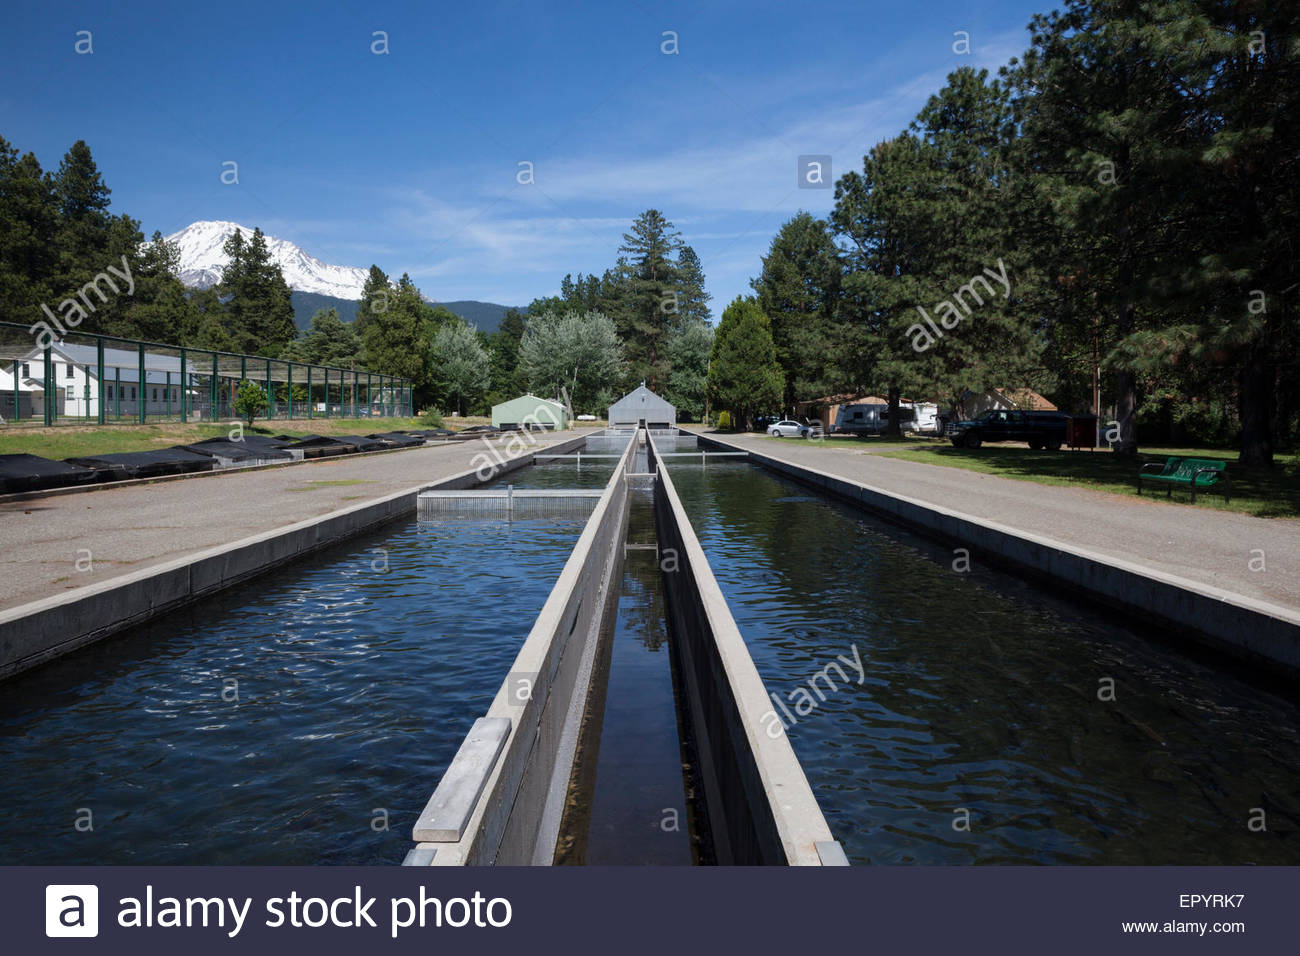 Mount Shasta Trout Hatchery, Mount Shasta, California - Stock Image